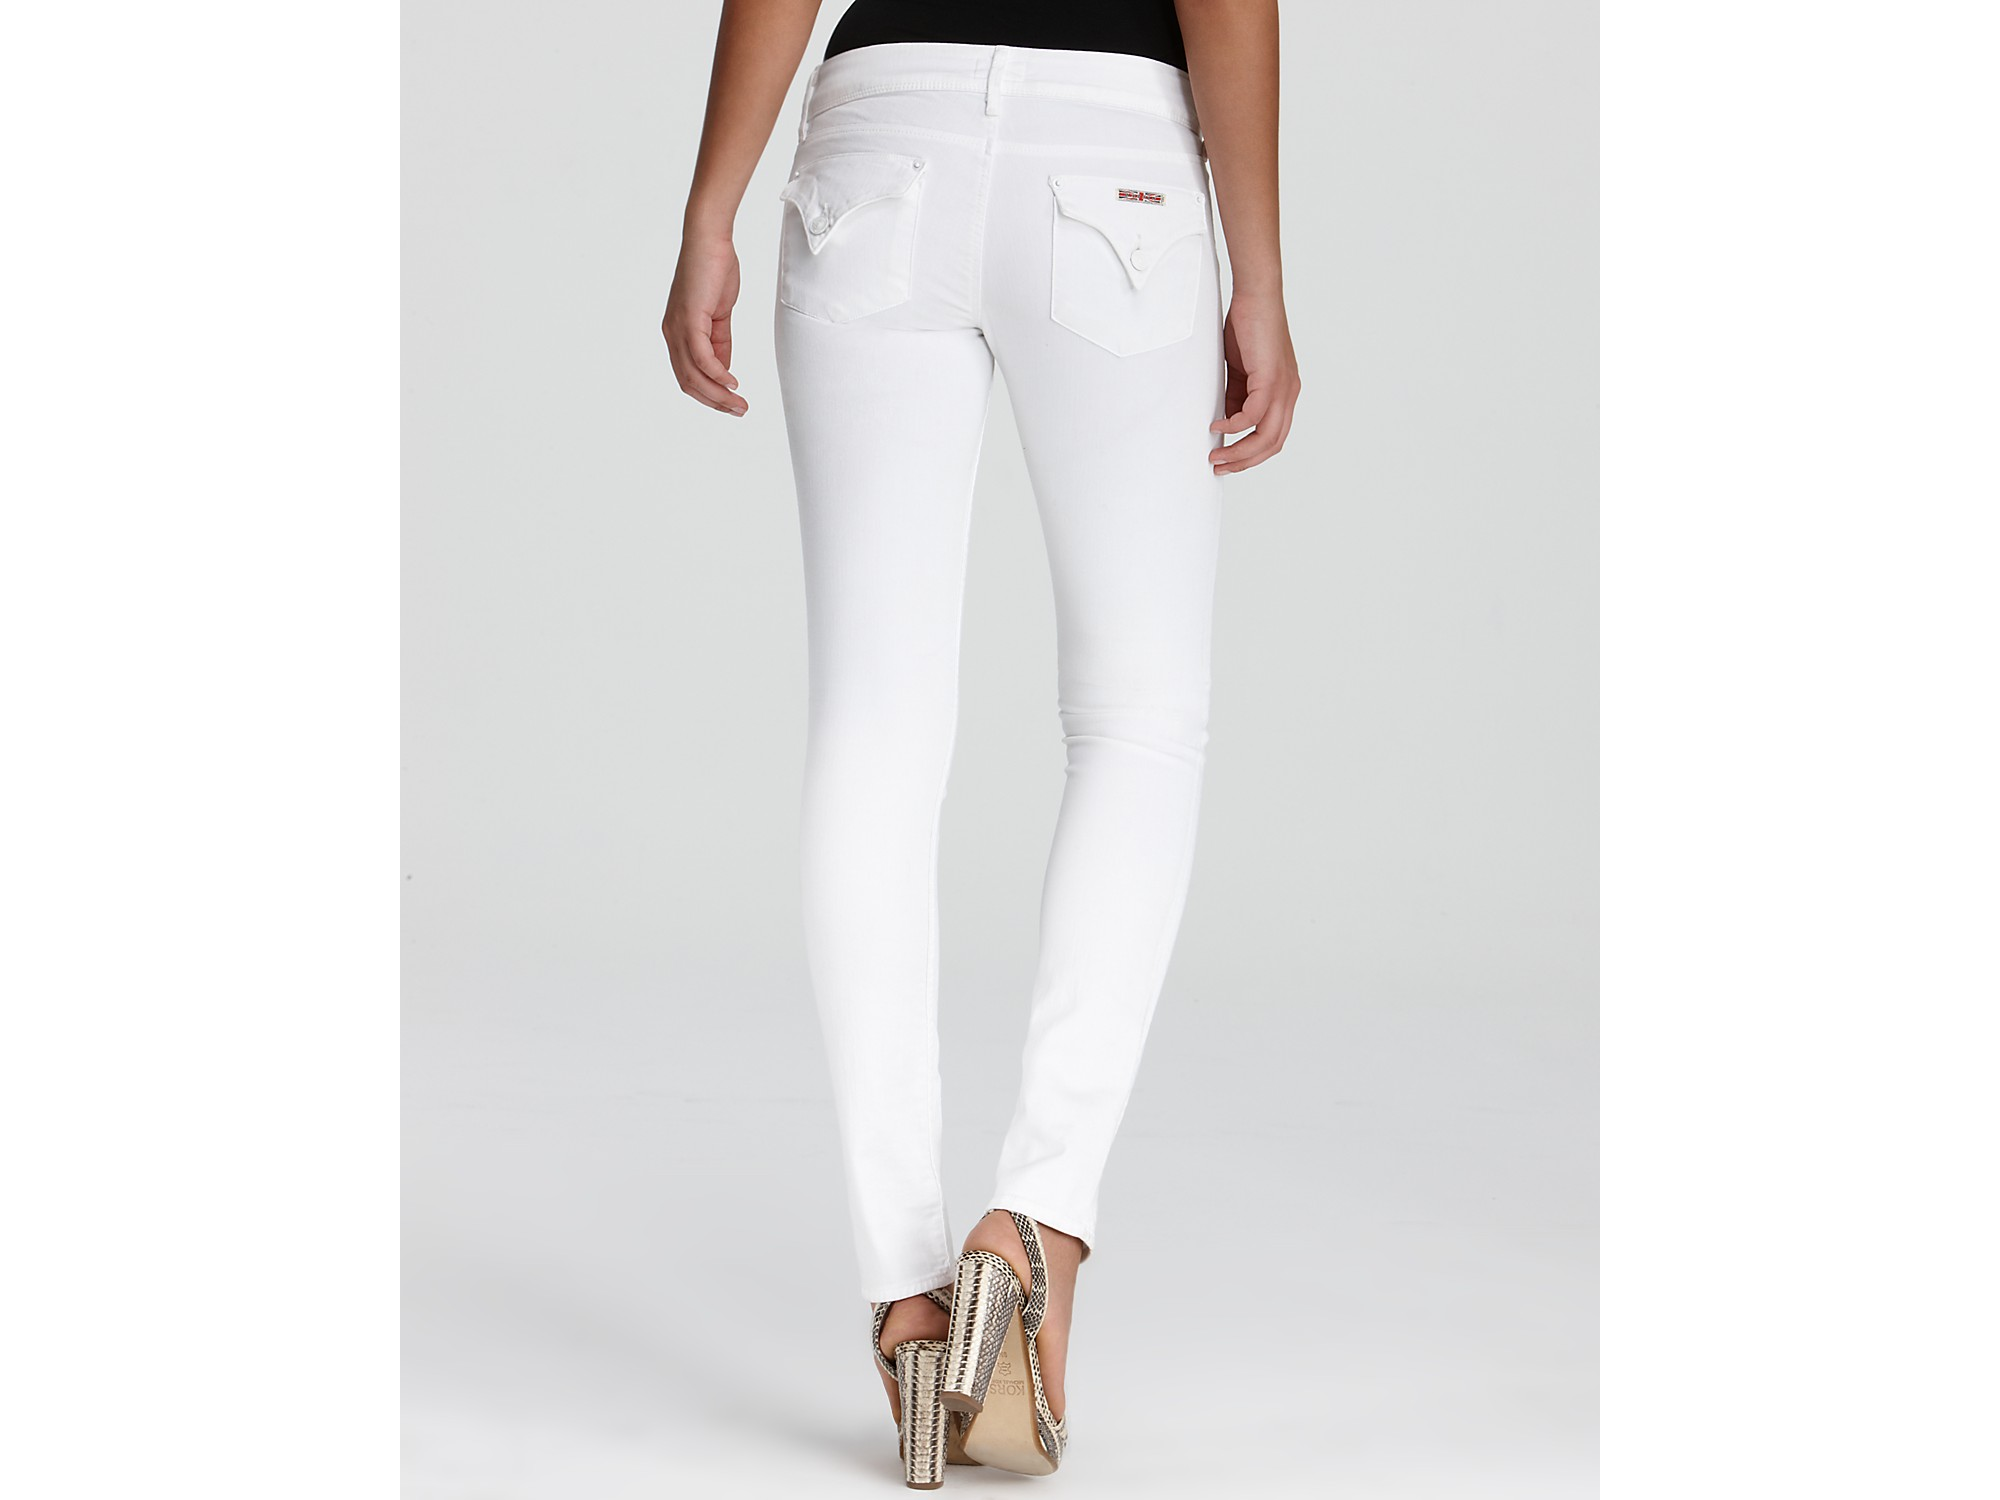 Hudson jeans Jeans Collin Skinny Jeans in White in White | Lyst